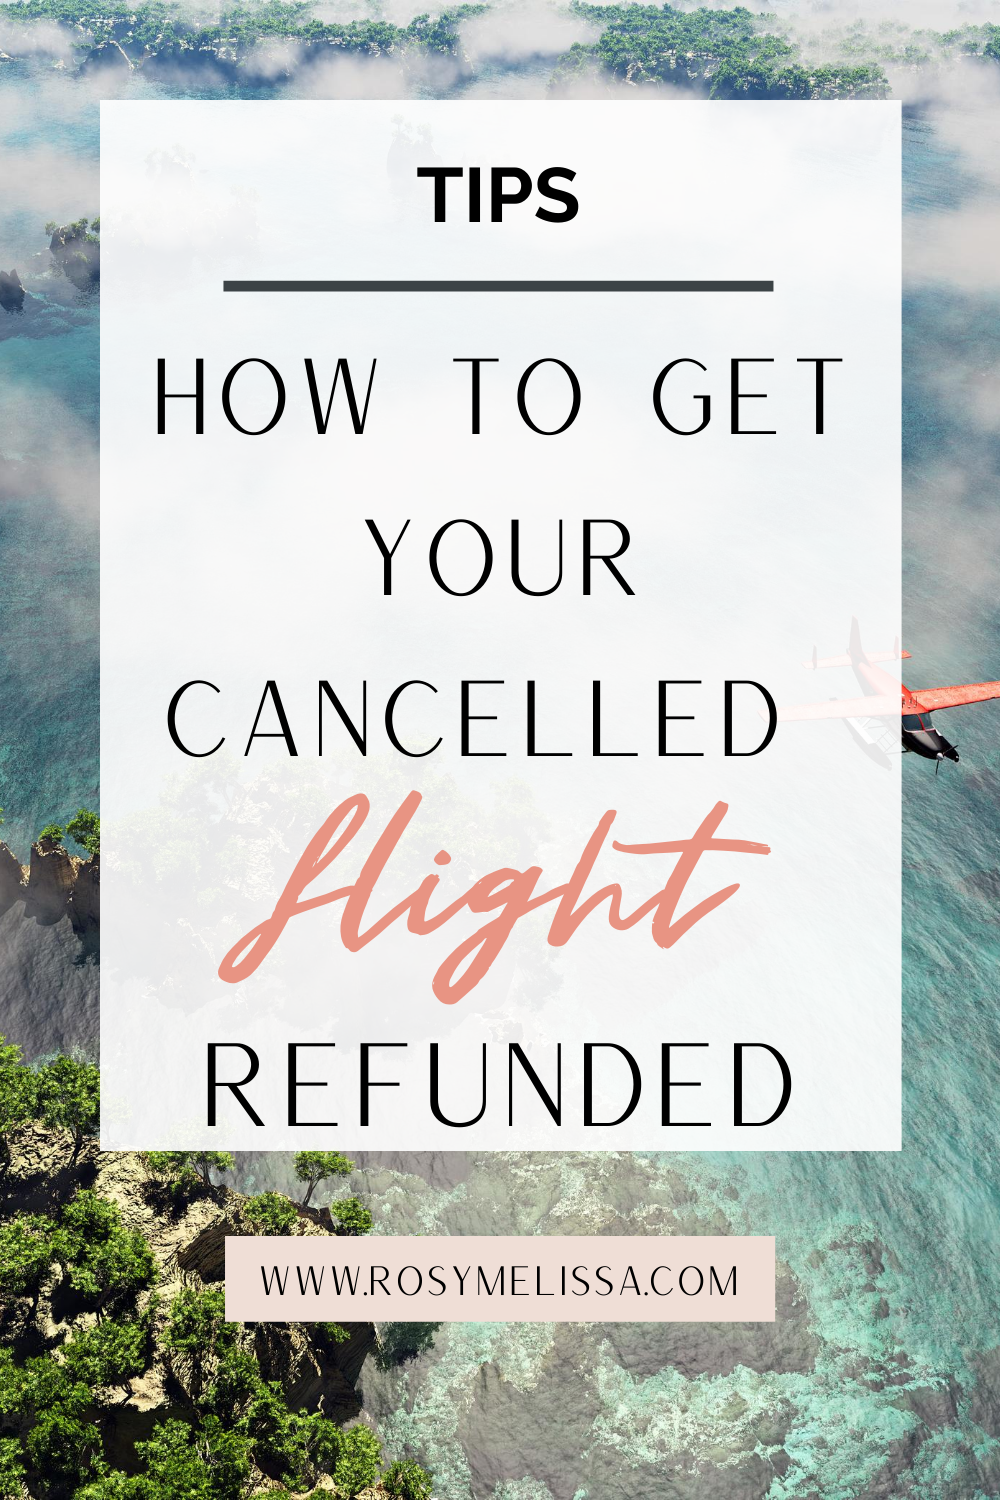 how to get compensated for a delayed or cancelled flight, travel tips, flight tips